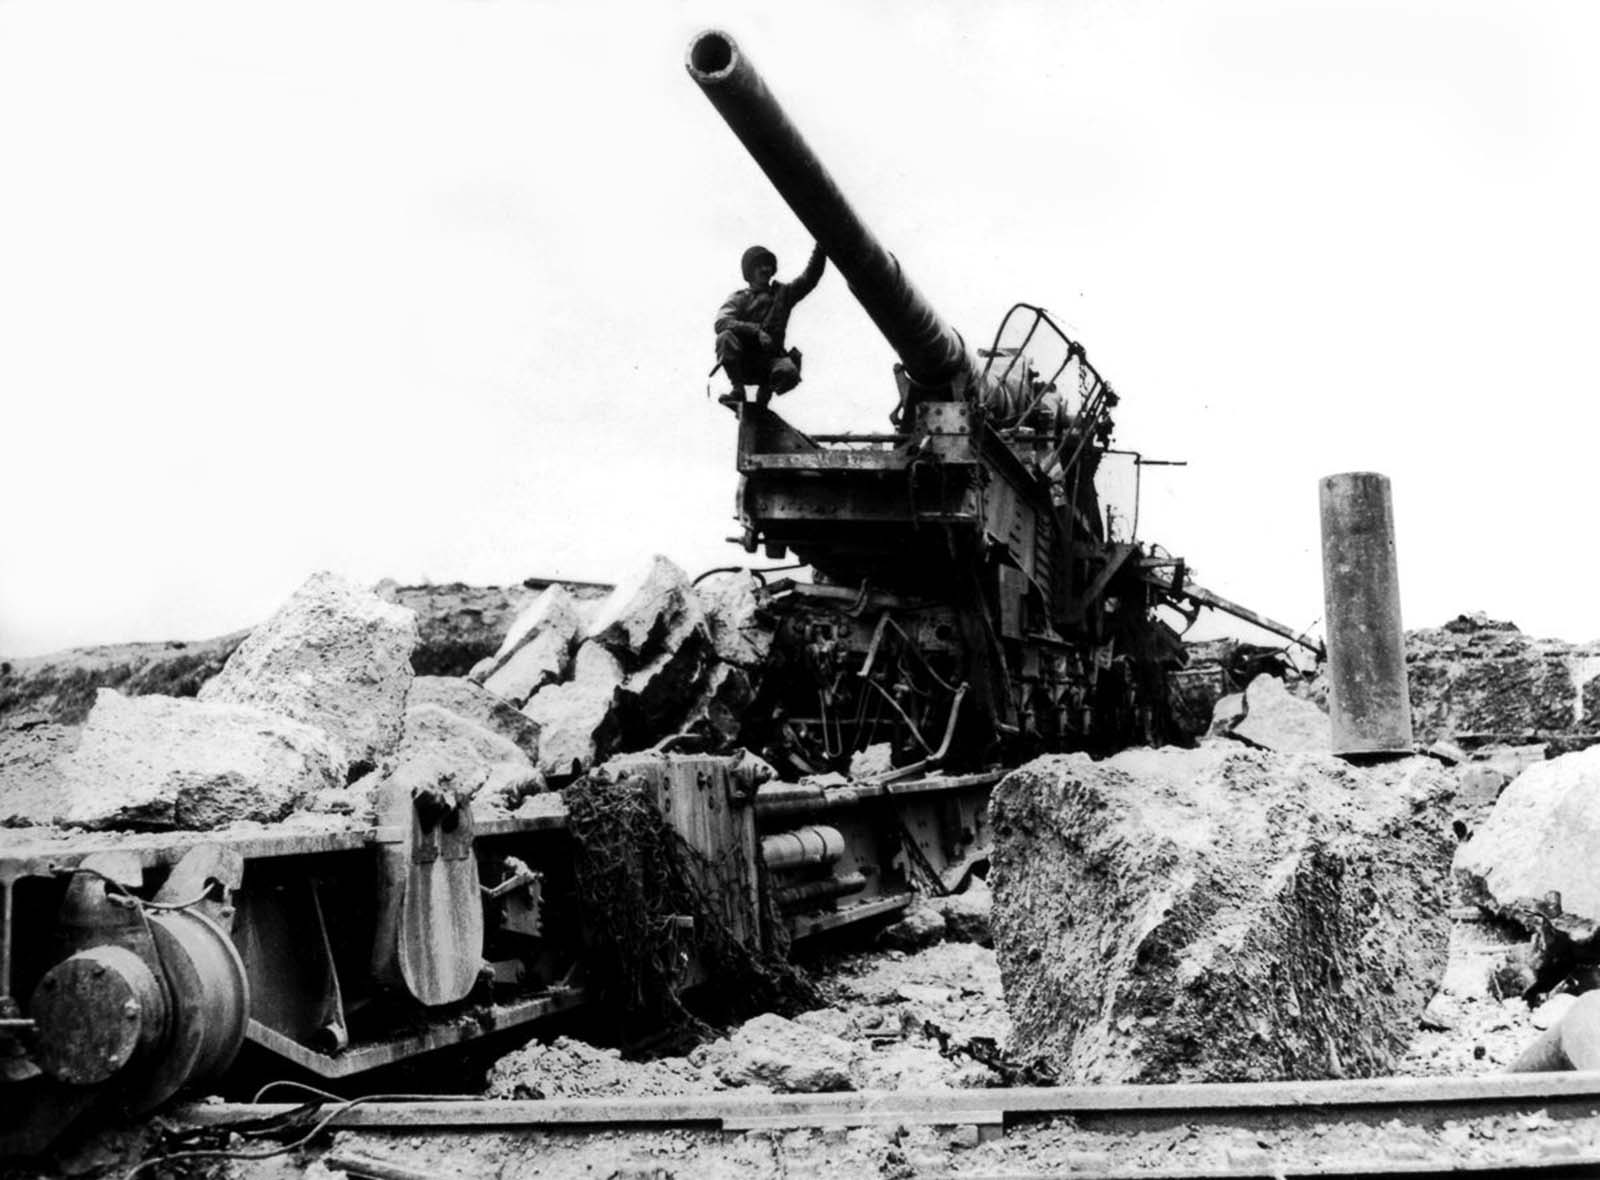 An American soldier examines a German 10-inch railway gun on the Cherbourg Peninsula in France. 1944.